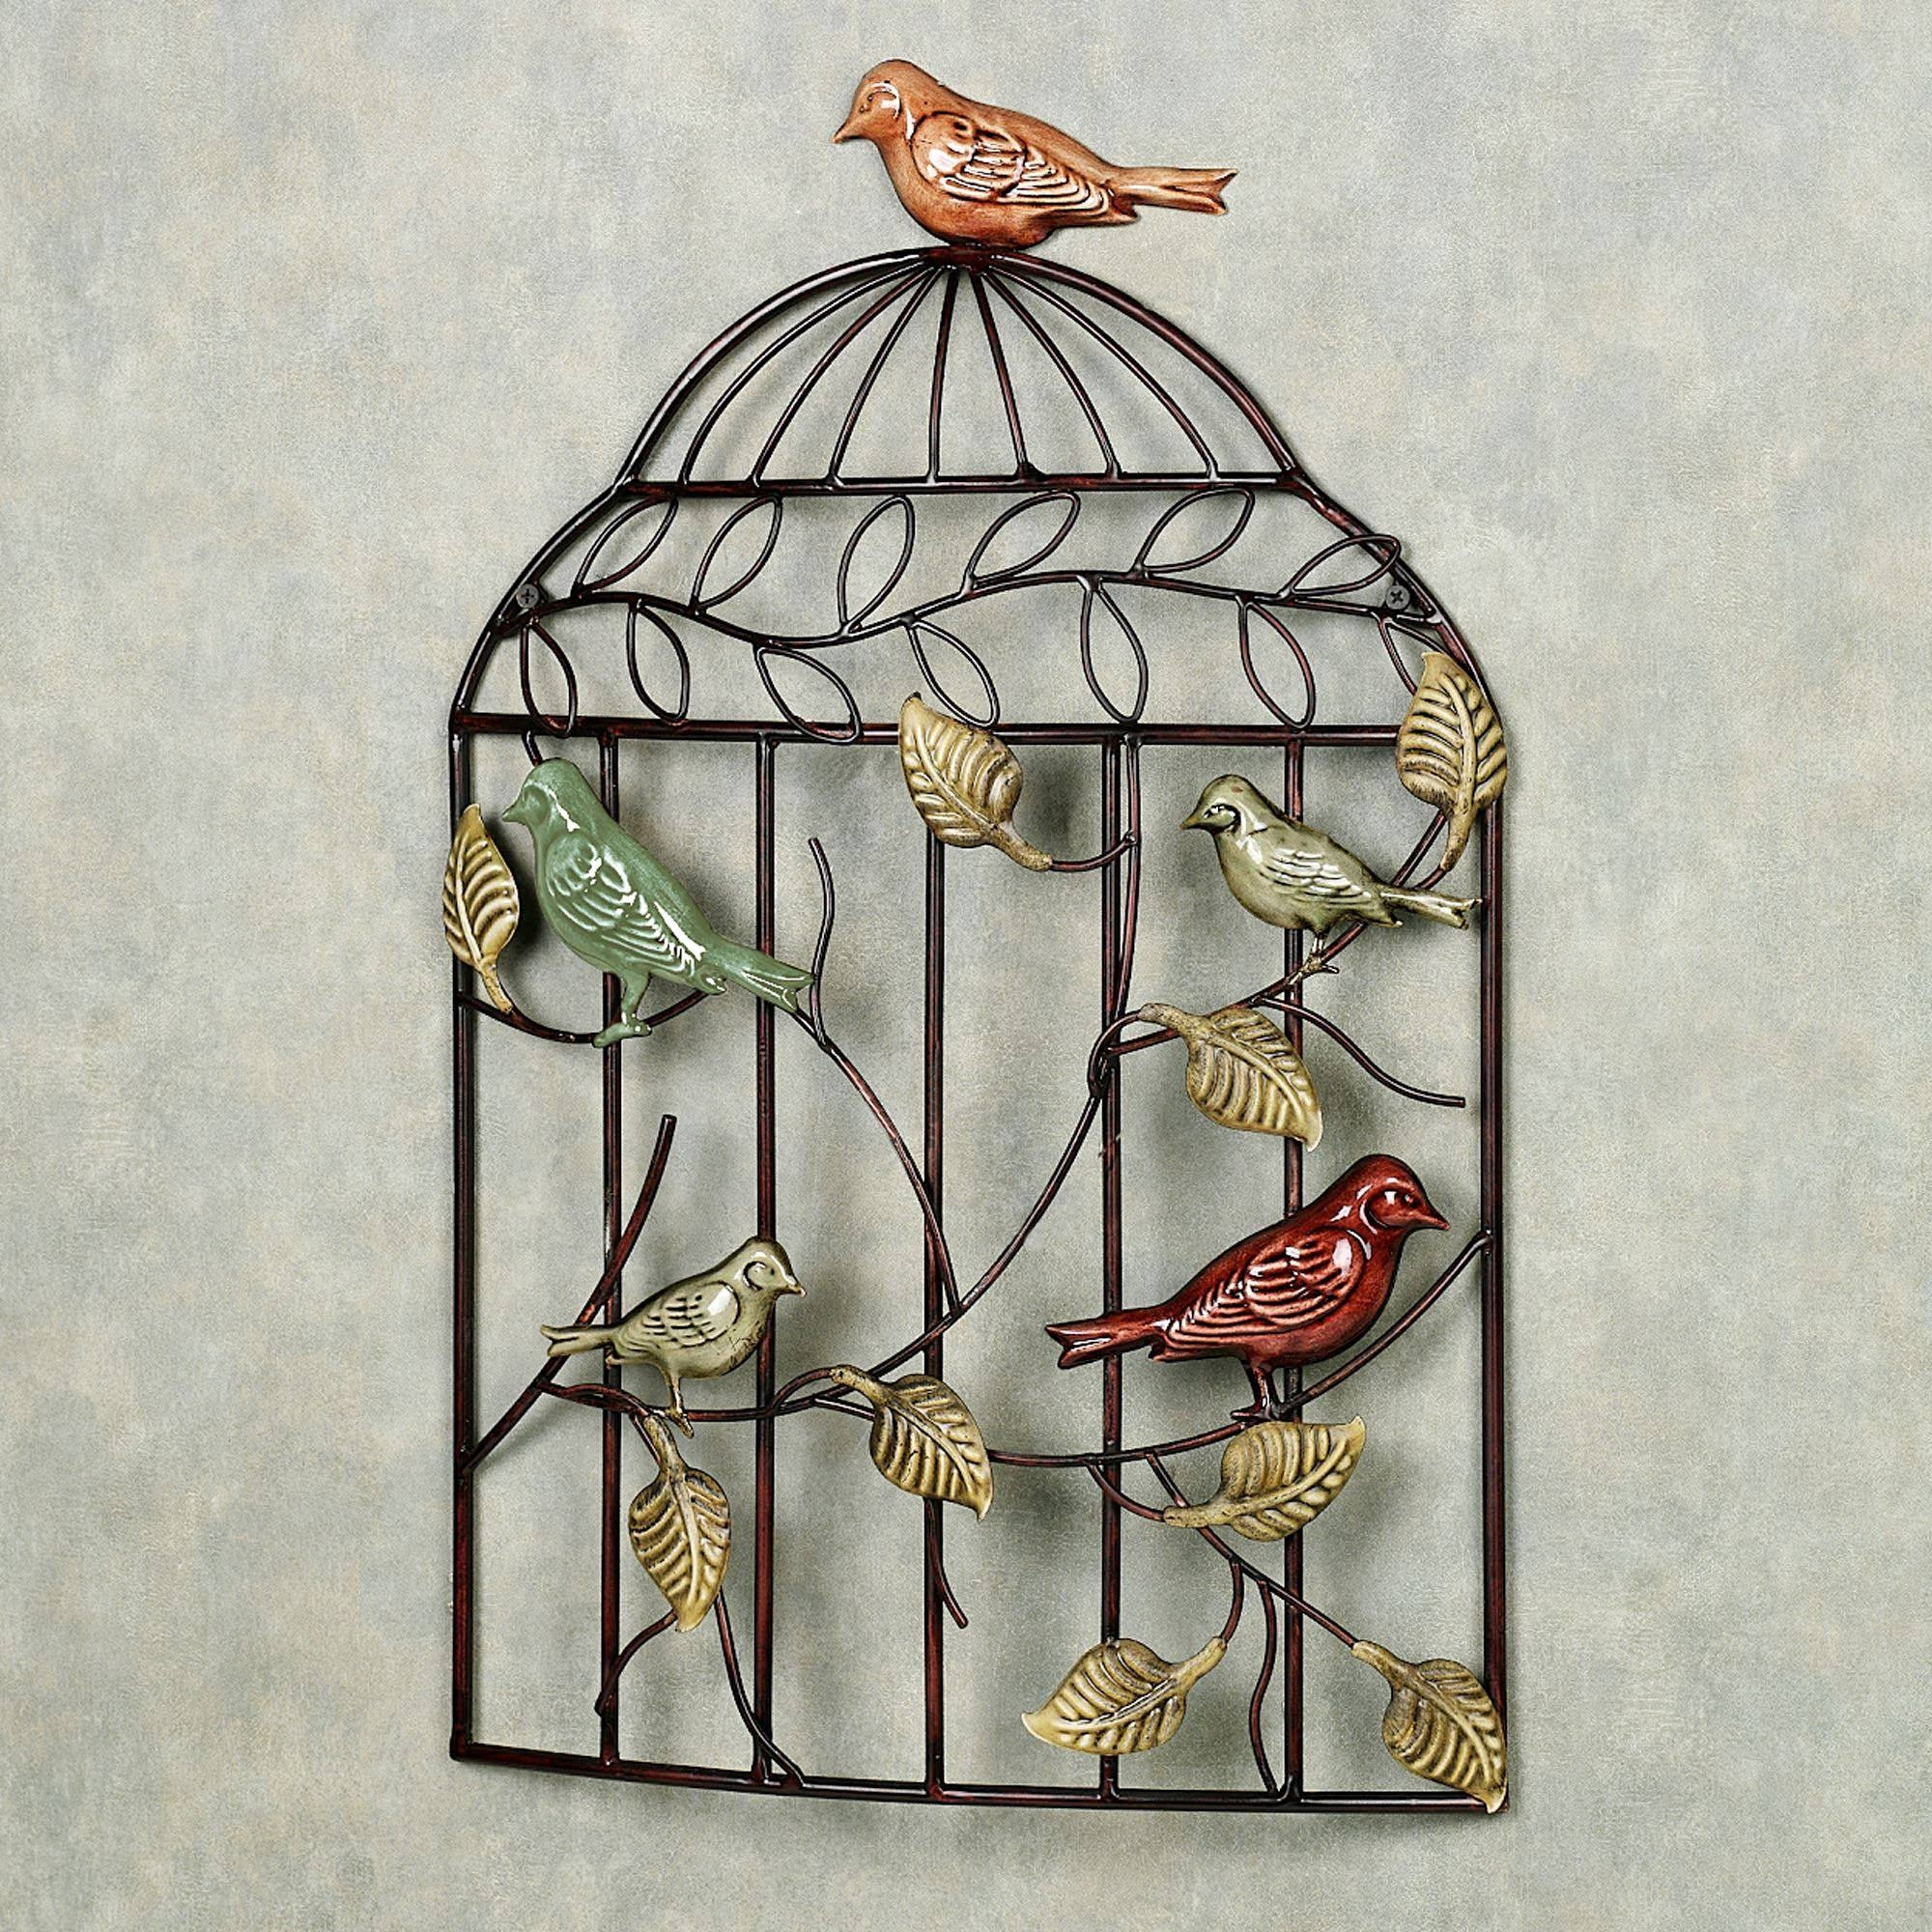 Bird Sanctuary Cage Metal Wall Art Regarding Most Popular Metal Birdcage Wall Art (View 5 of 15)